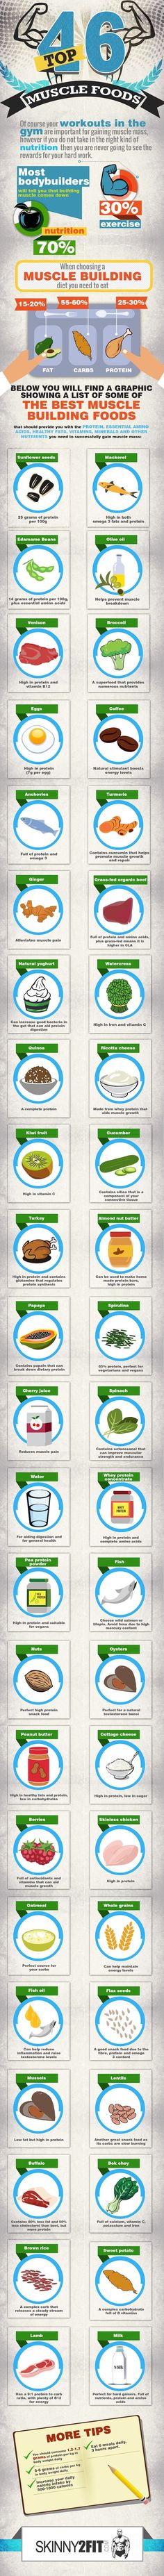 Tips to Gain Muscle Mass with Top 46 Foods - Tipsographic